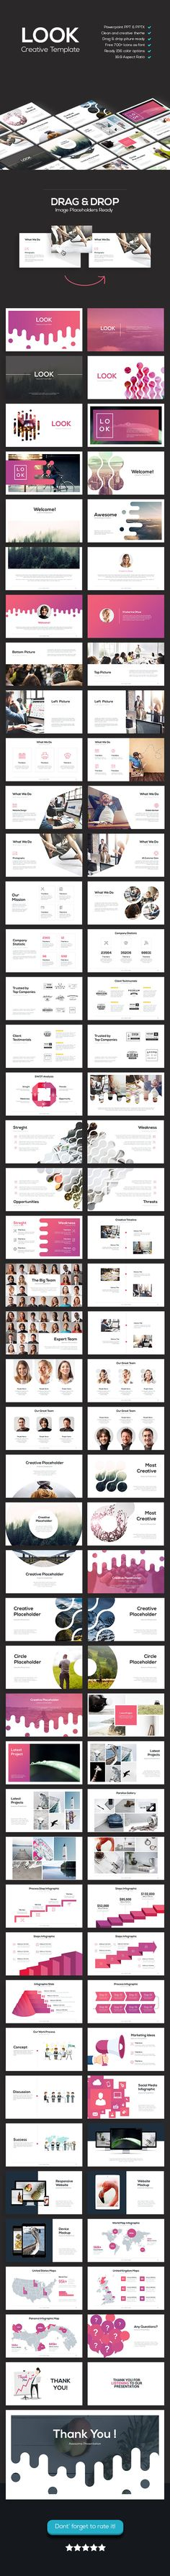 Look - Creative Theme  #classic #design • Download ➝ https://graphicriver.net/item/look-creative-theme/18090004?ref=pxcr